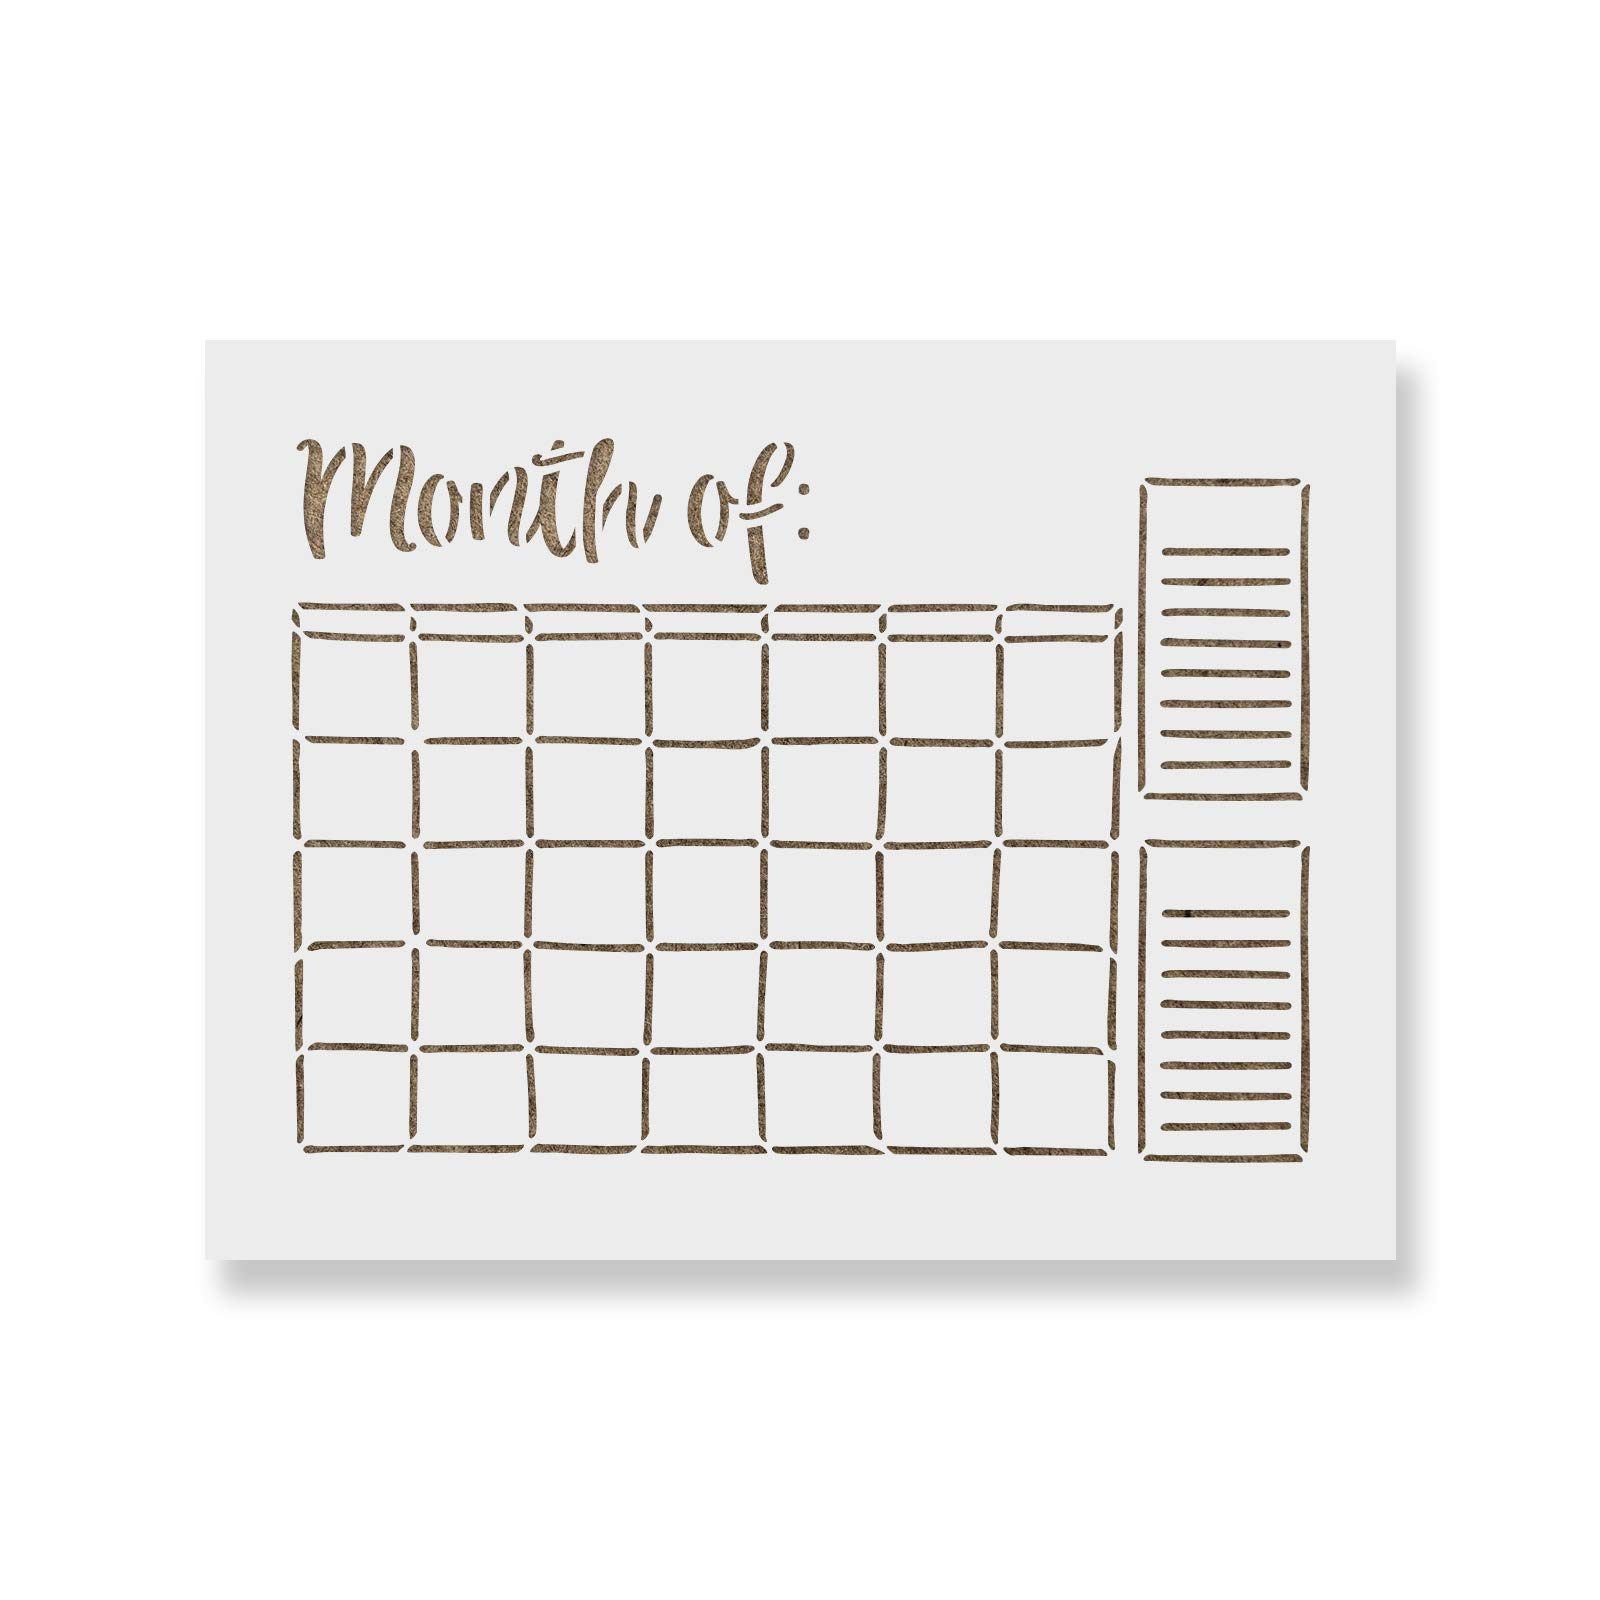 Calendar Stencil Template - Reusable Stencils for Painting in Small & Large Sizes by Stencil Revolution